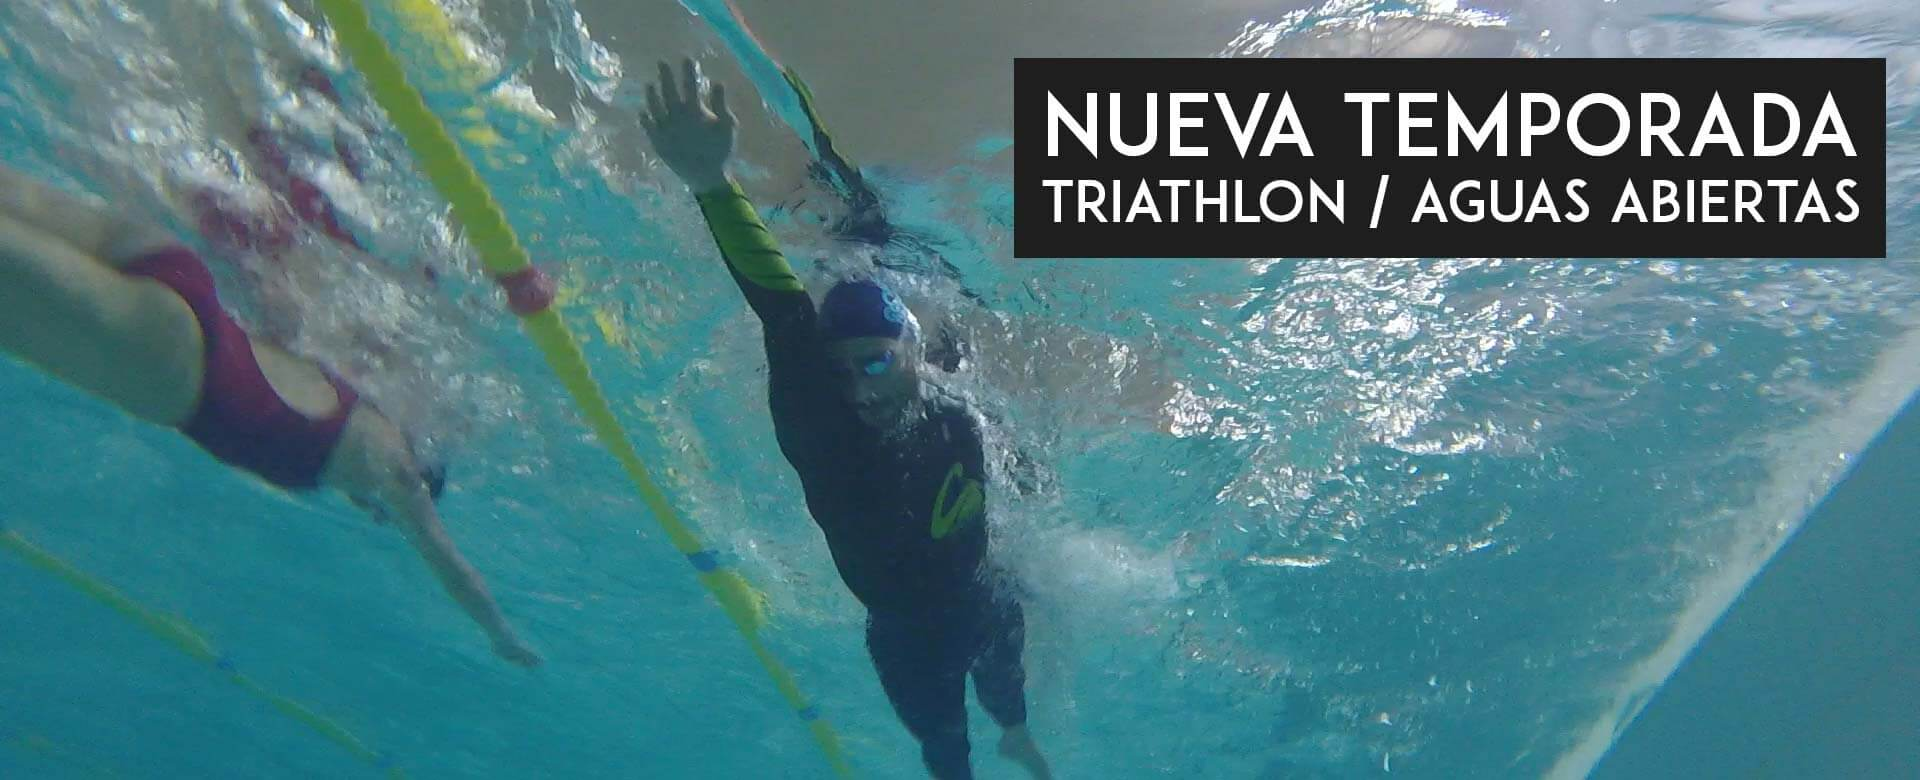 temporada-triathlon